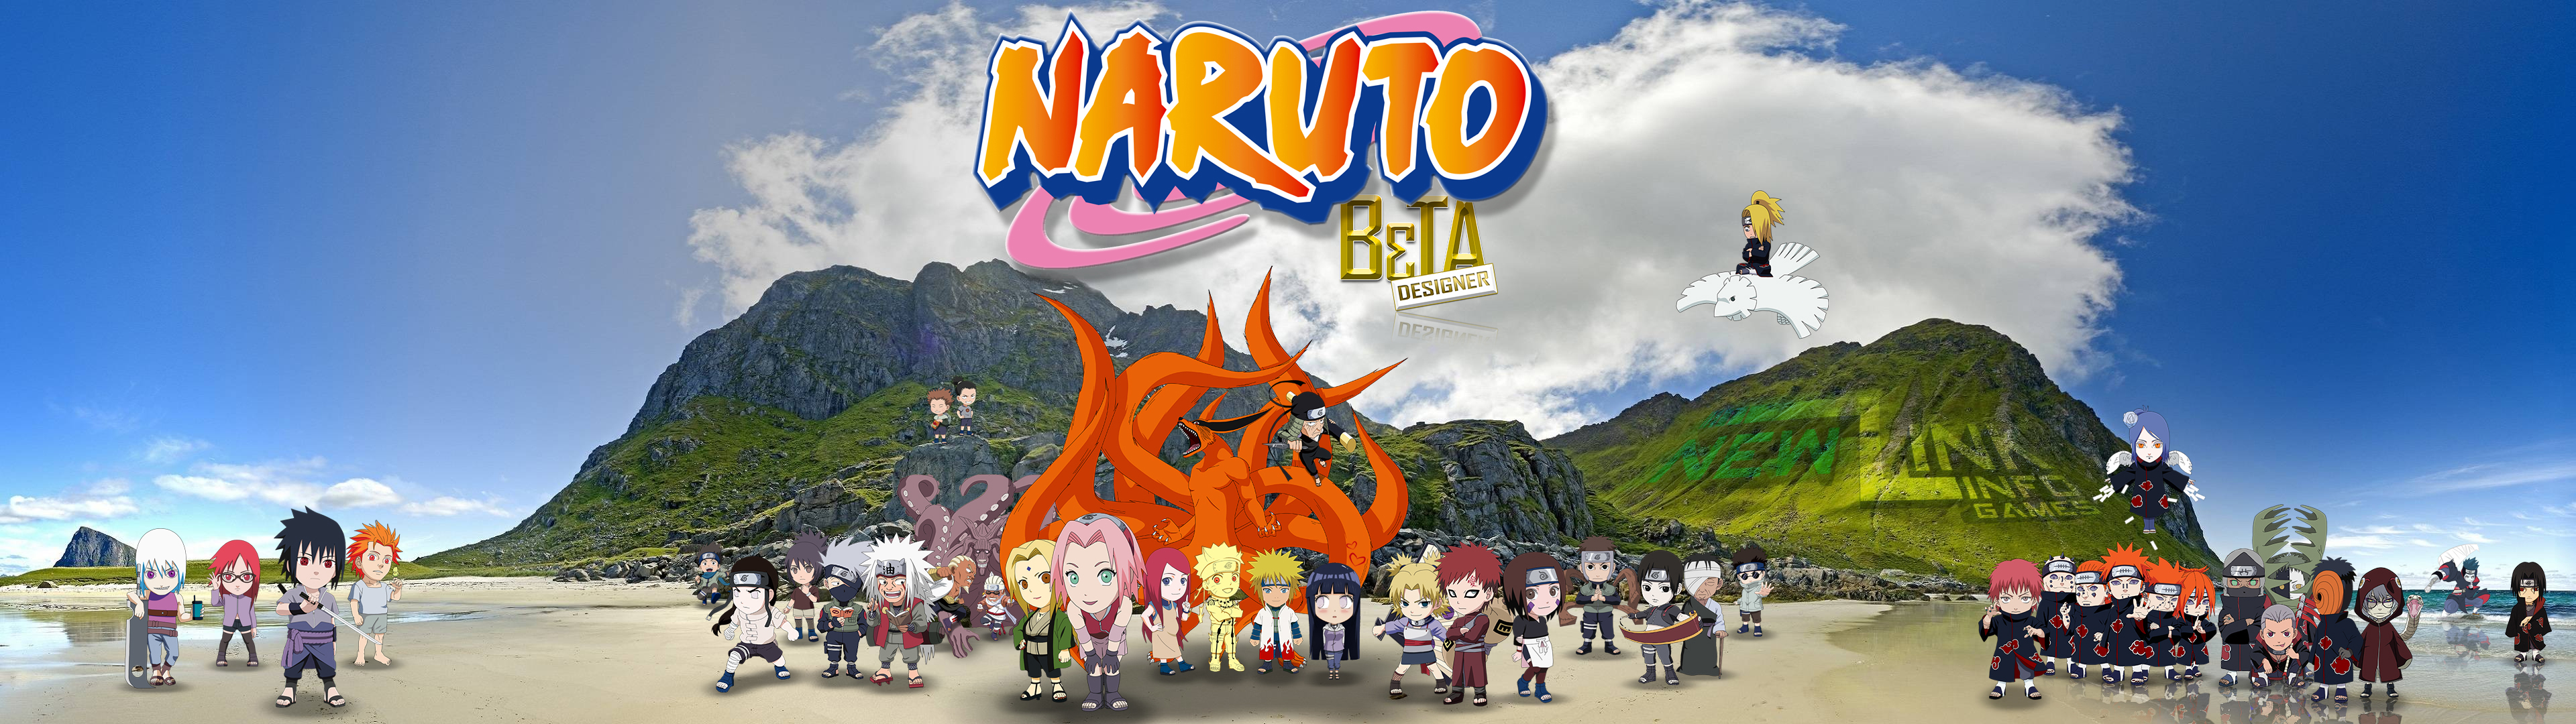 Naruto Chibi O3 Wallpaper Dual Monitor Full Hd By Newlinkgamesdf On Deviantart